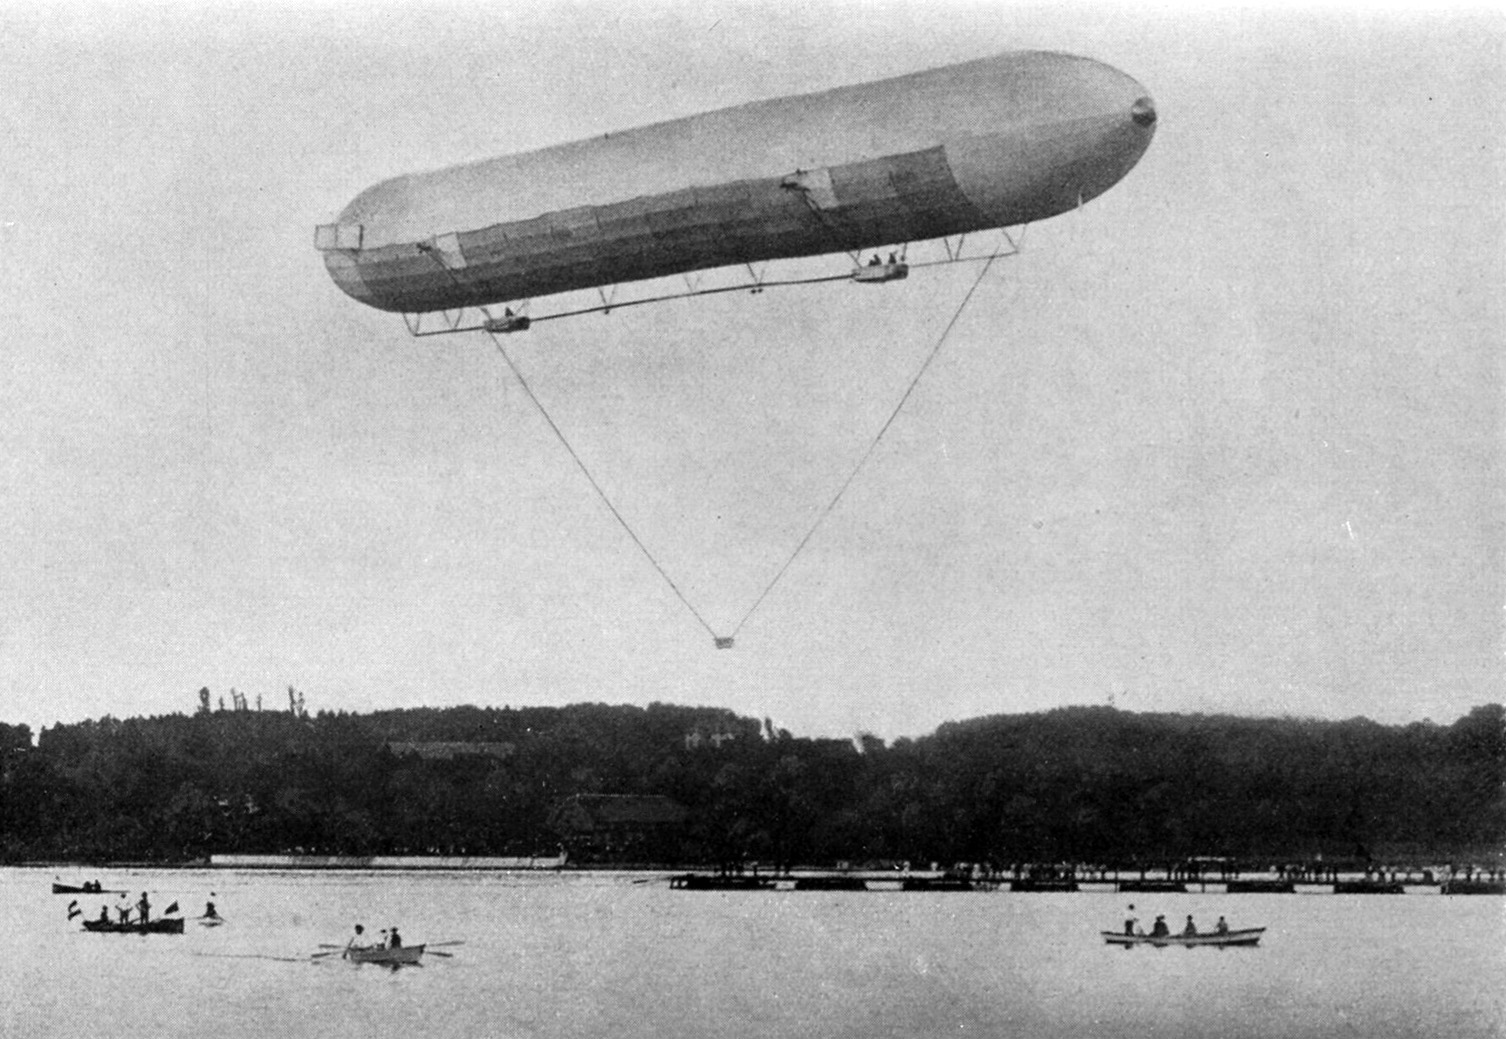 The Zeppelin LZ 1 over Lake Constance on October 17 or October 24, 1900